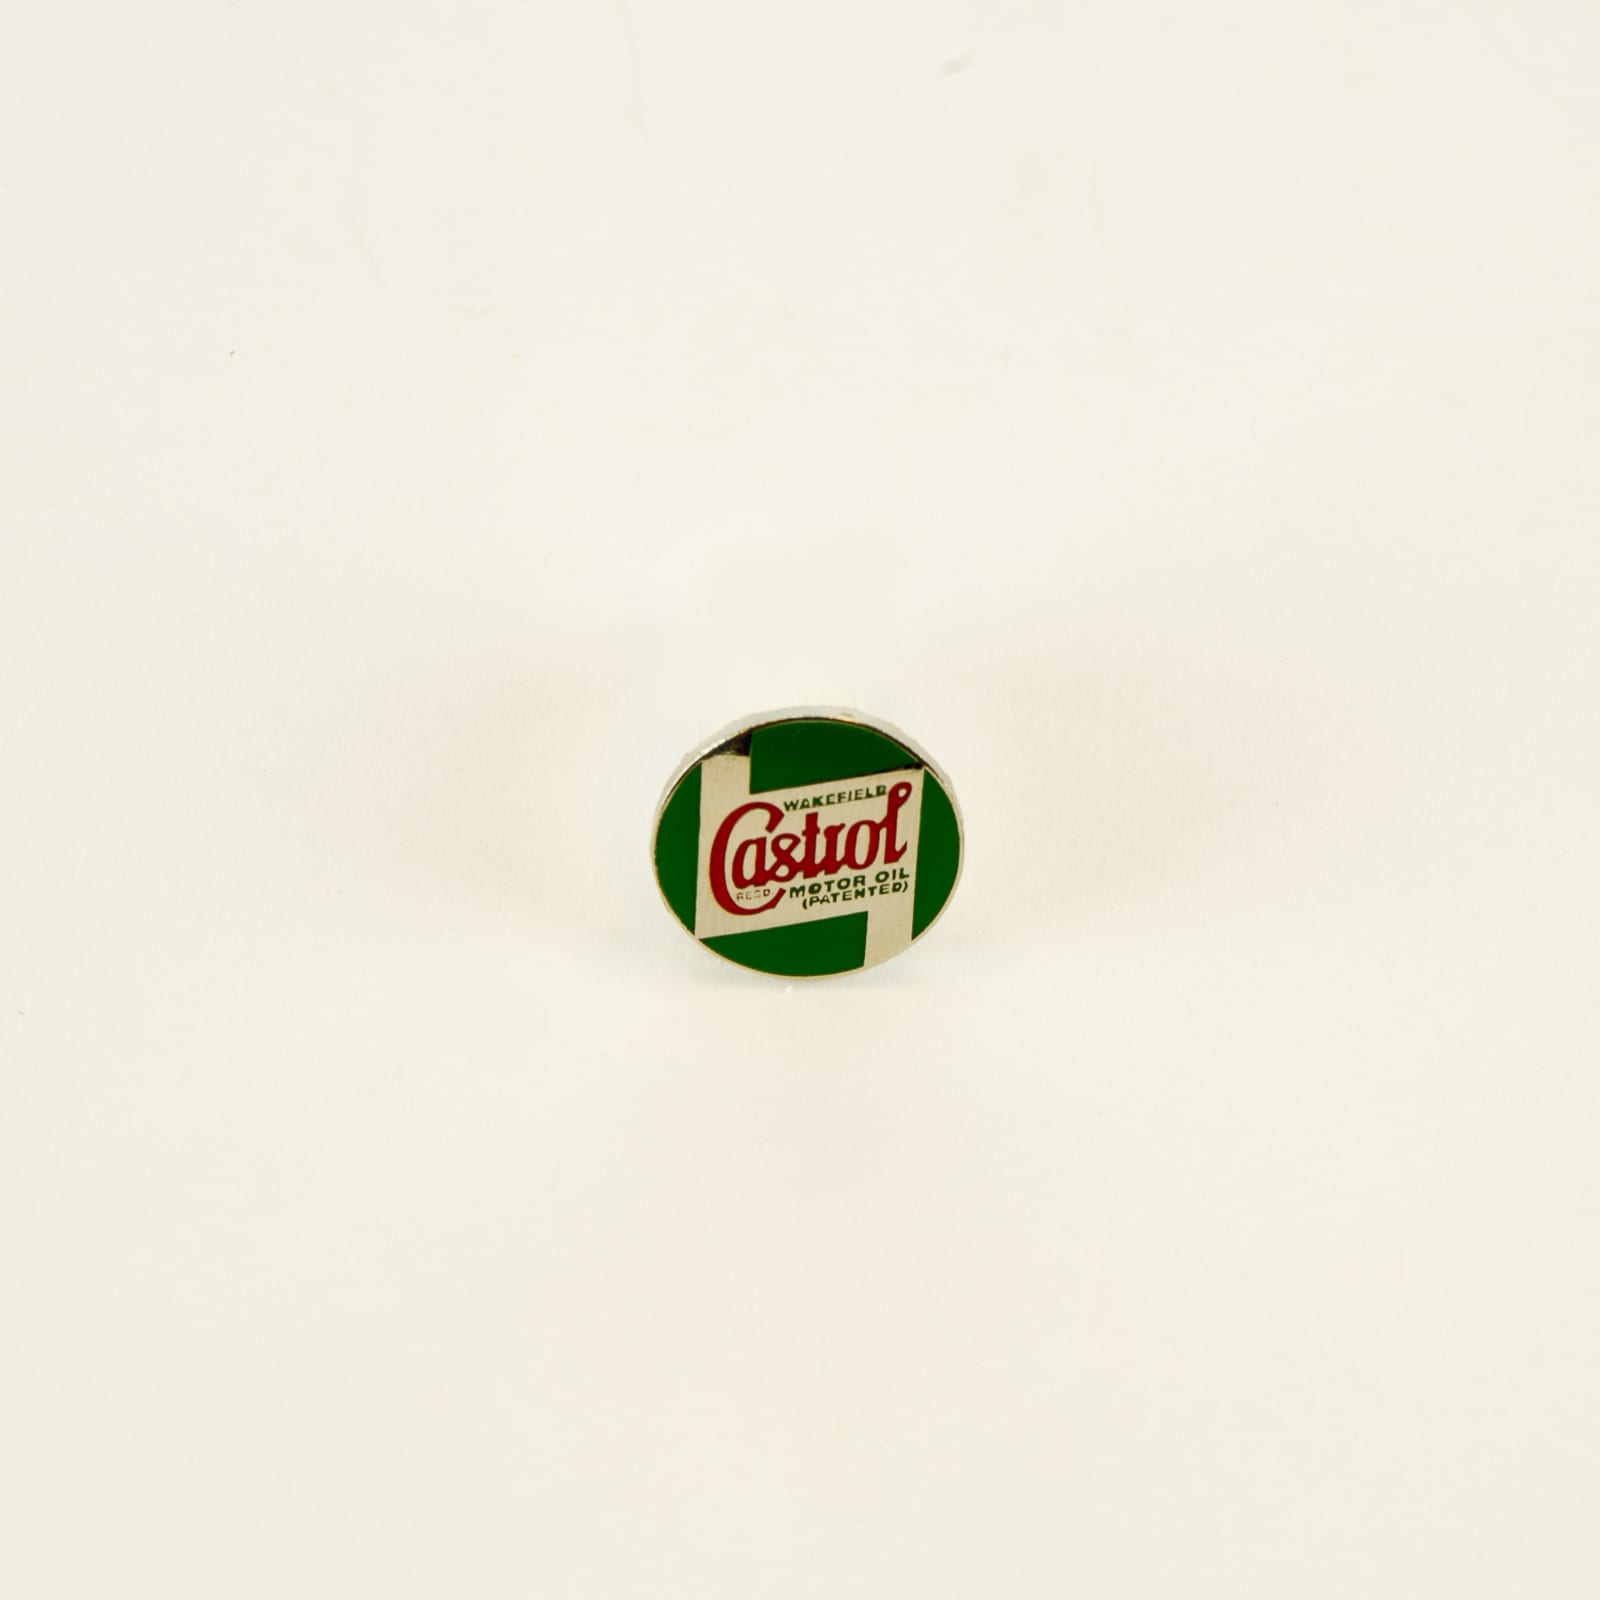 CASTROL-ENAMEL-PIN-BADGE-2-WEB